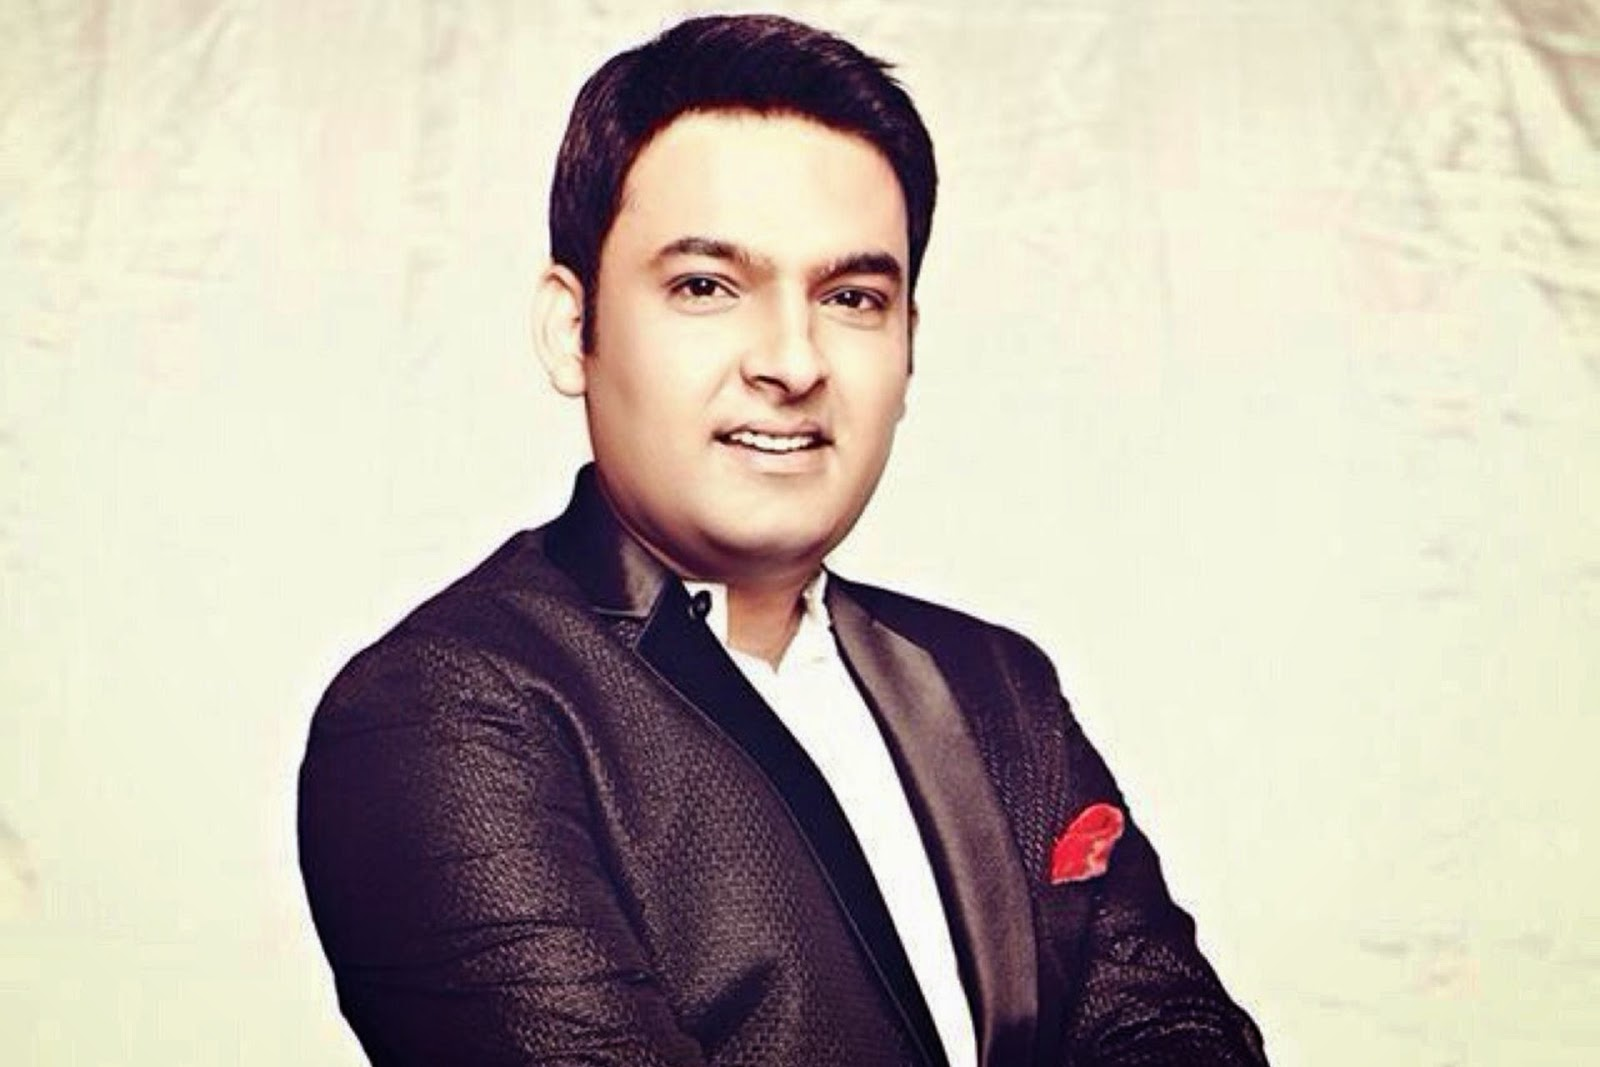 Kapil Sharma, Manish Paul, Jhalak Dikhhla Jaa, Comedy Nights with Kapil, Bank Chor, Bharti Singh, Gangs of Hassepur, TELEBUZZ,